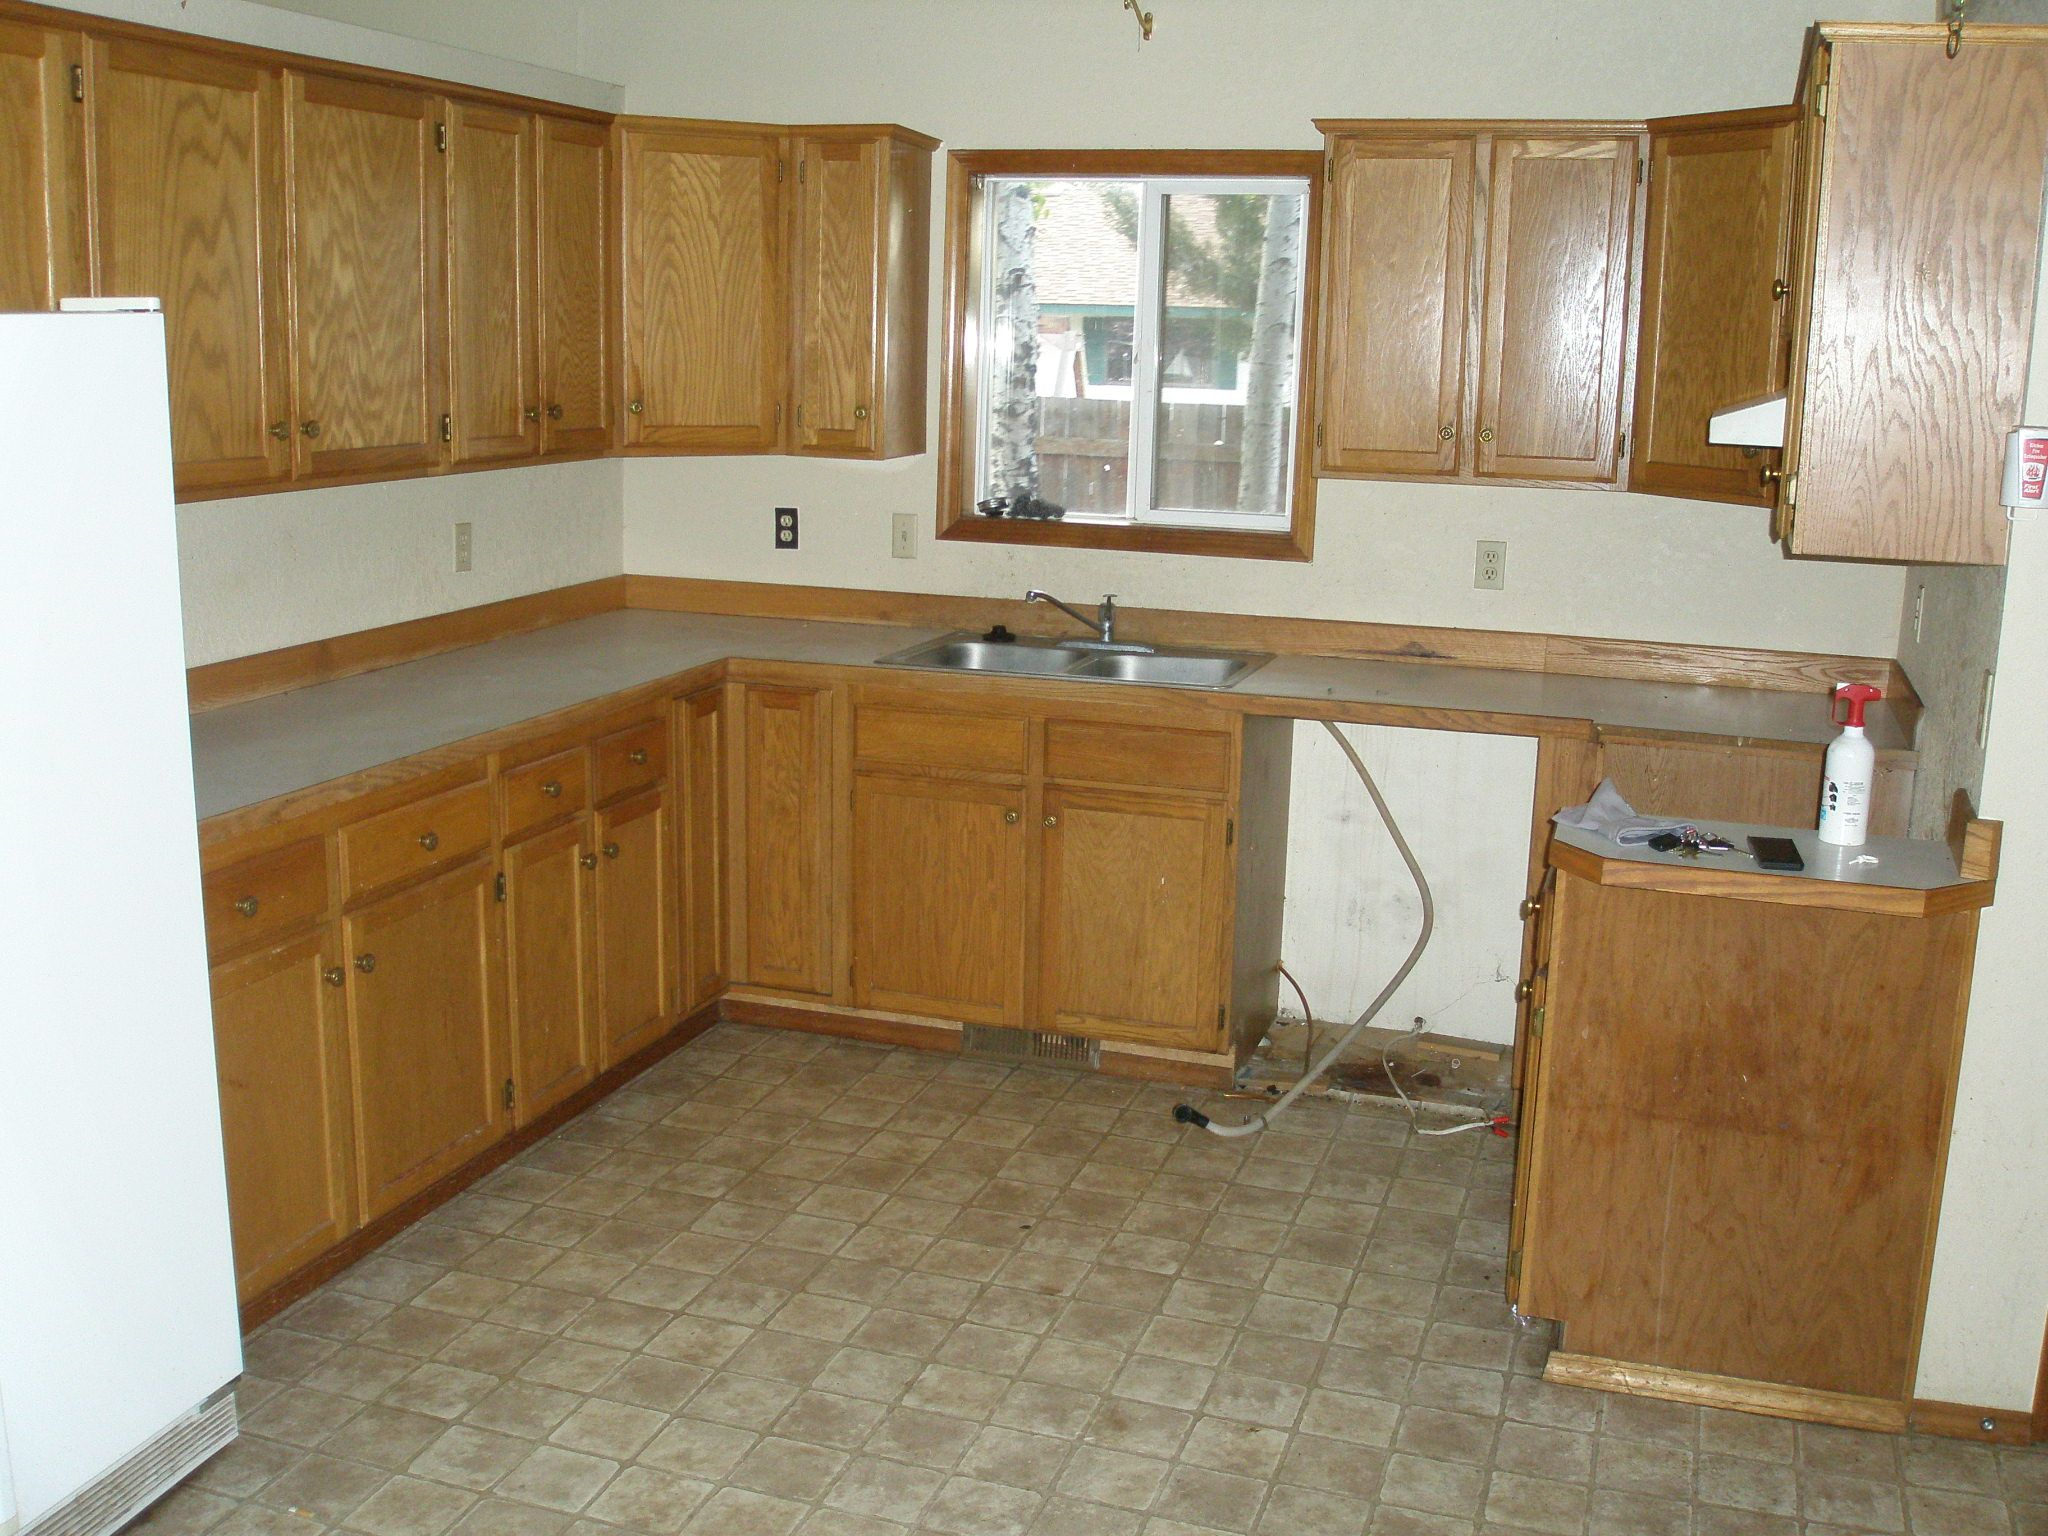 Remodel My Kitchen Before Typical 90s Kitchen My Kitchen Remodel Ideas Pinterest